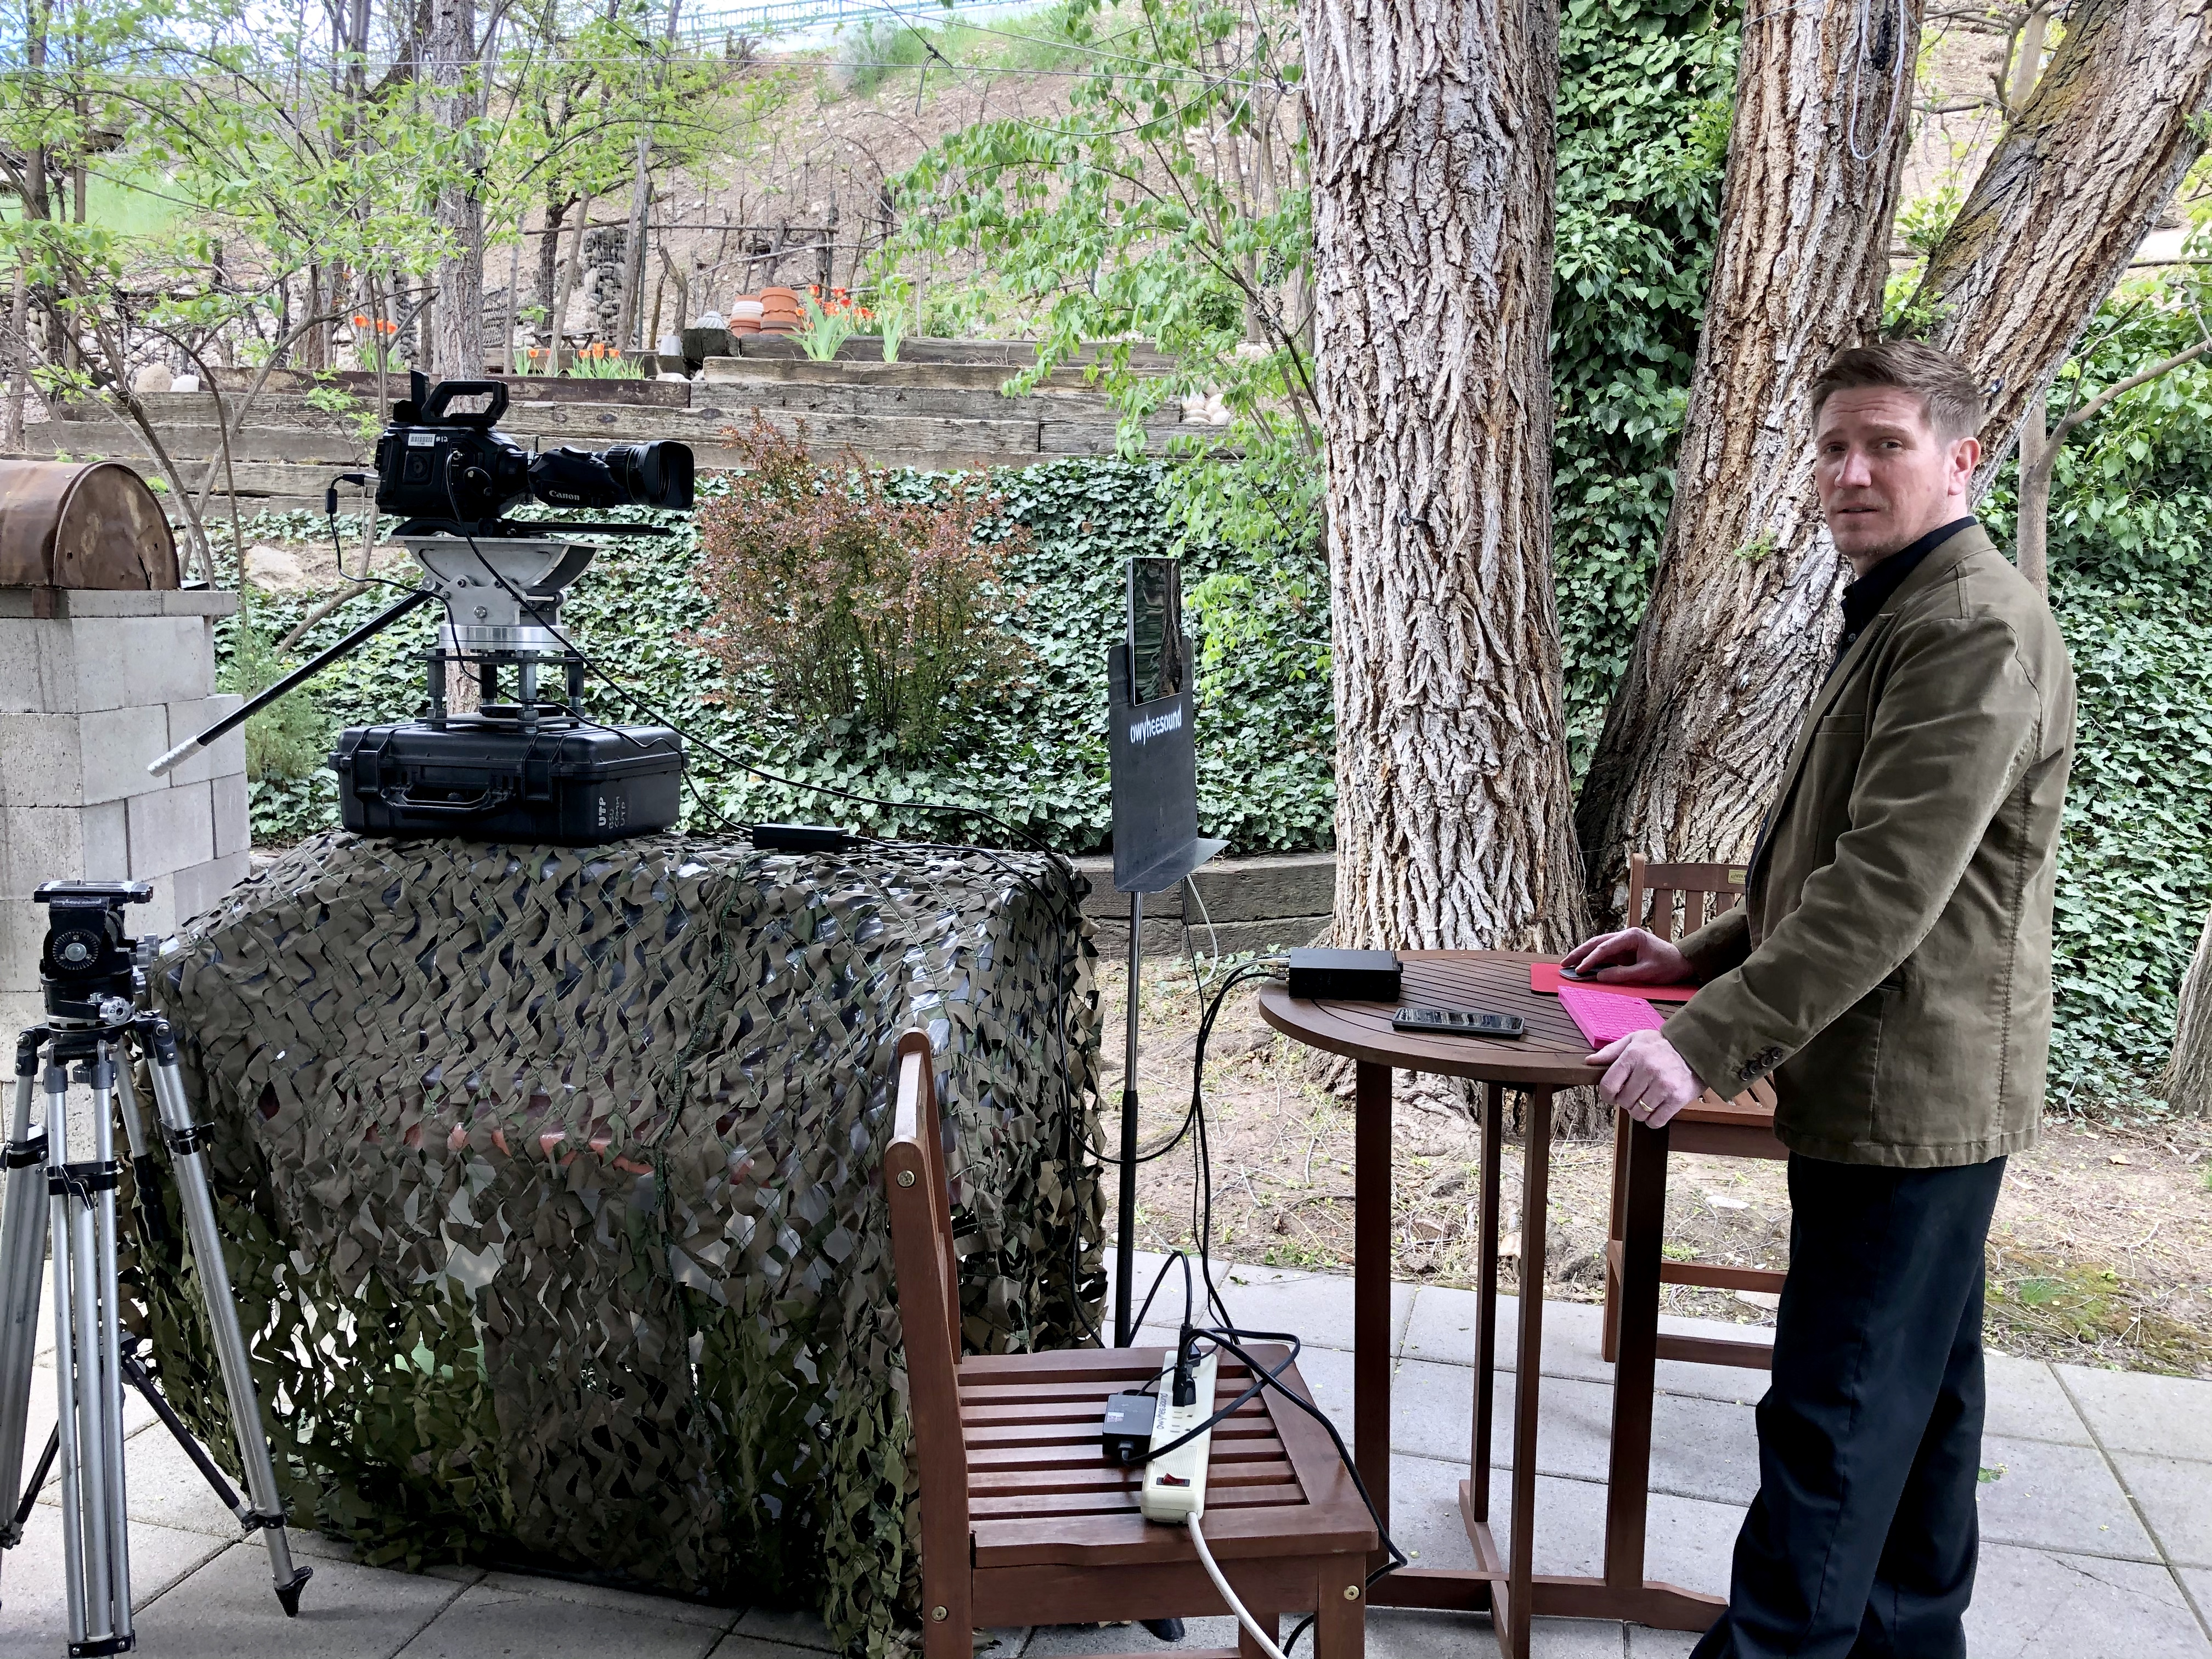 Nathan Snyder next to studio set-up including camera, tripod, mouse, and screen.